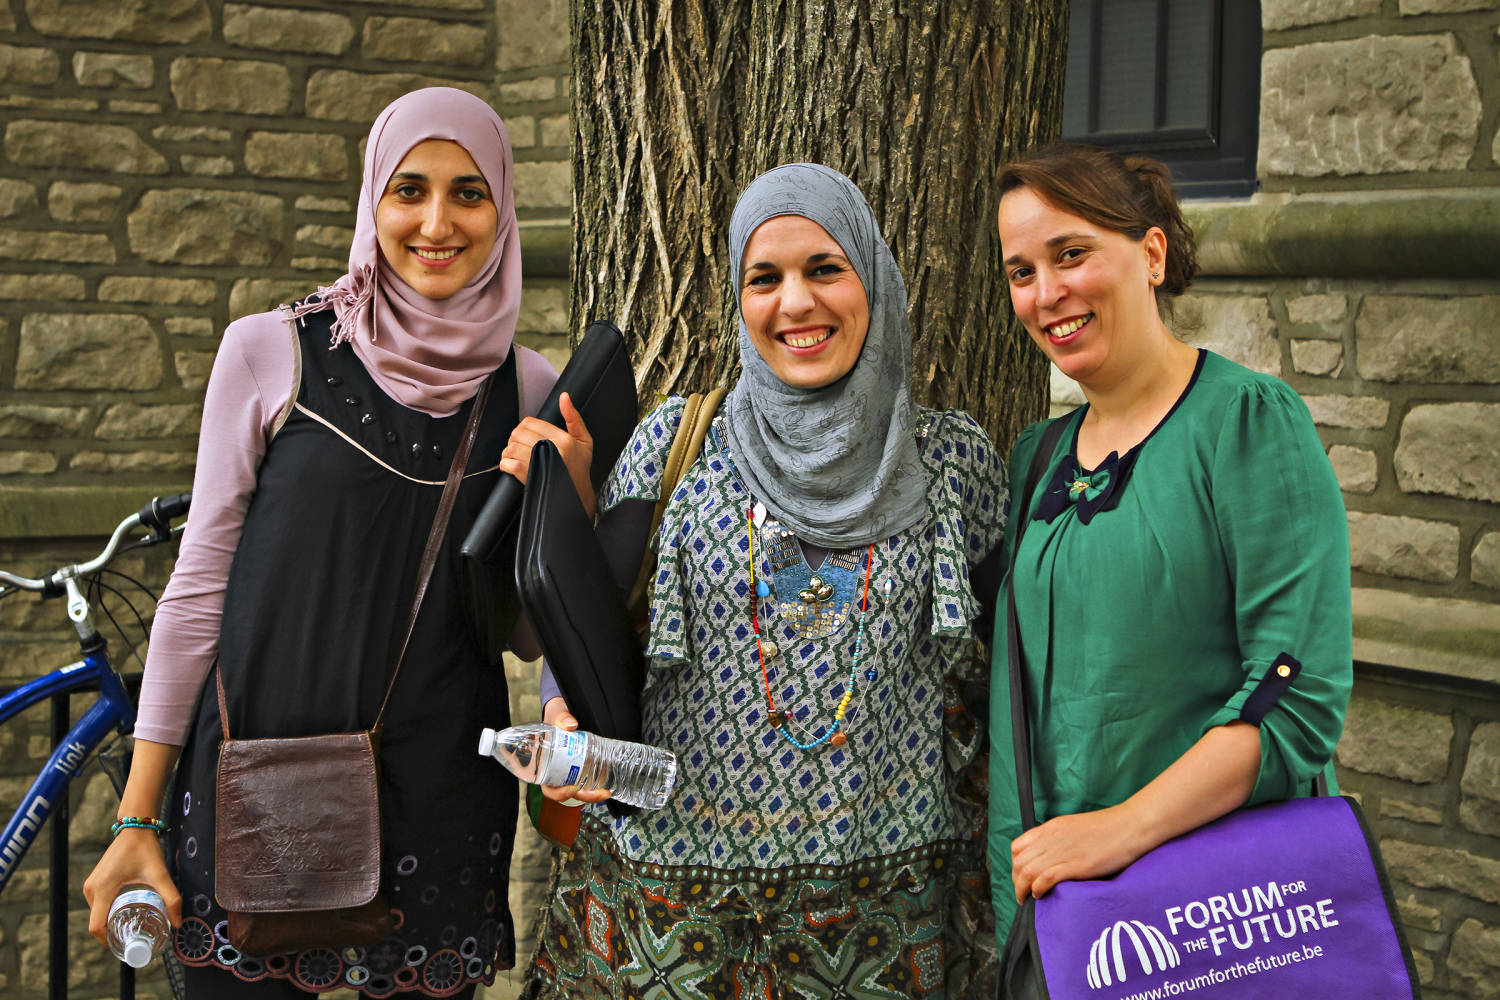 From left, Sihem Khiri, Souad Mammou and Louiza Chekmam pose for a group picture outside Gentry Hall on the University of Missouri campus. As part of an Cochran Fellowship Program, the three women from Algeria visited Missouri to learn about agricultural markets.